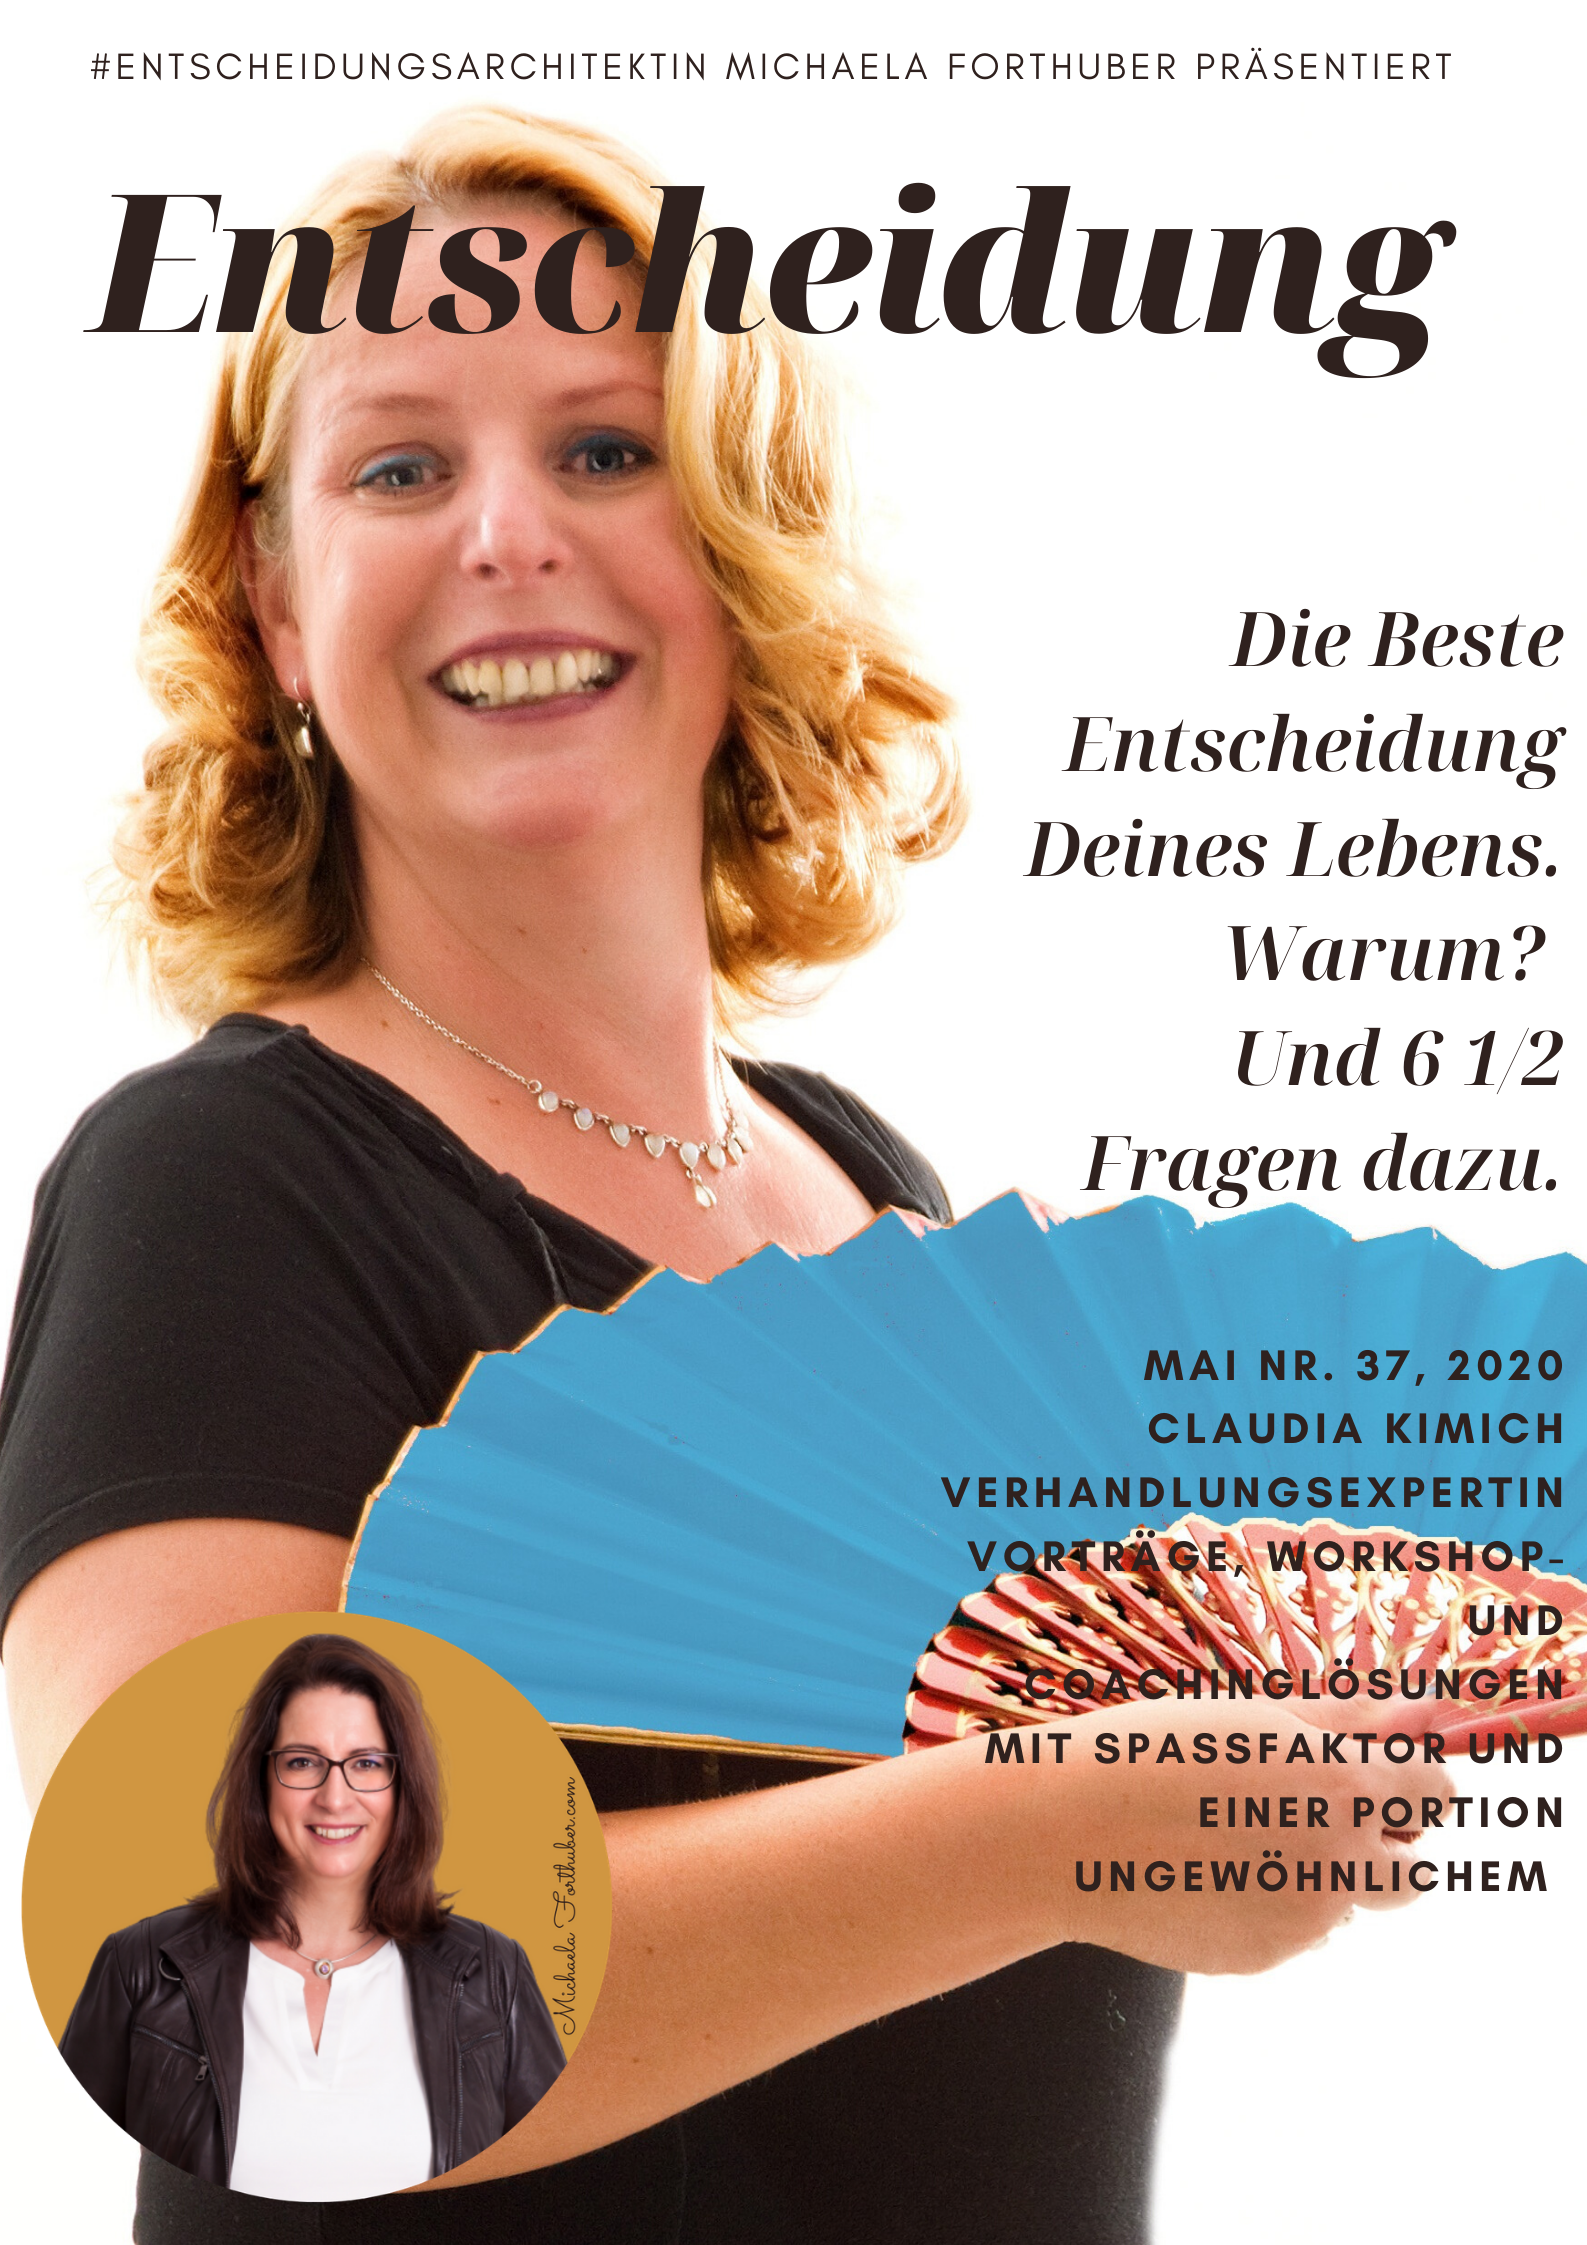 Blog Interview Entscheiden Cover Interview Michaela Forthuber #Entscheidungsarchitetkin mit Claudia Kimich